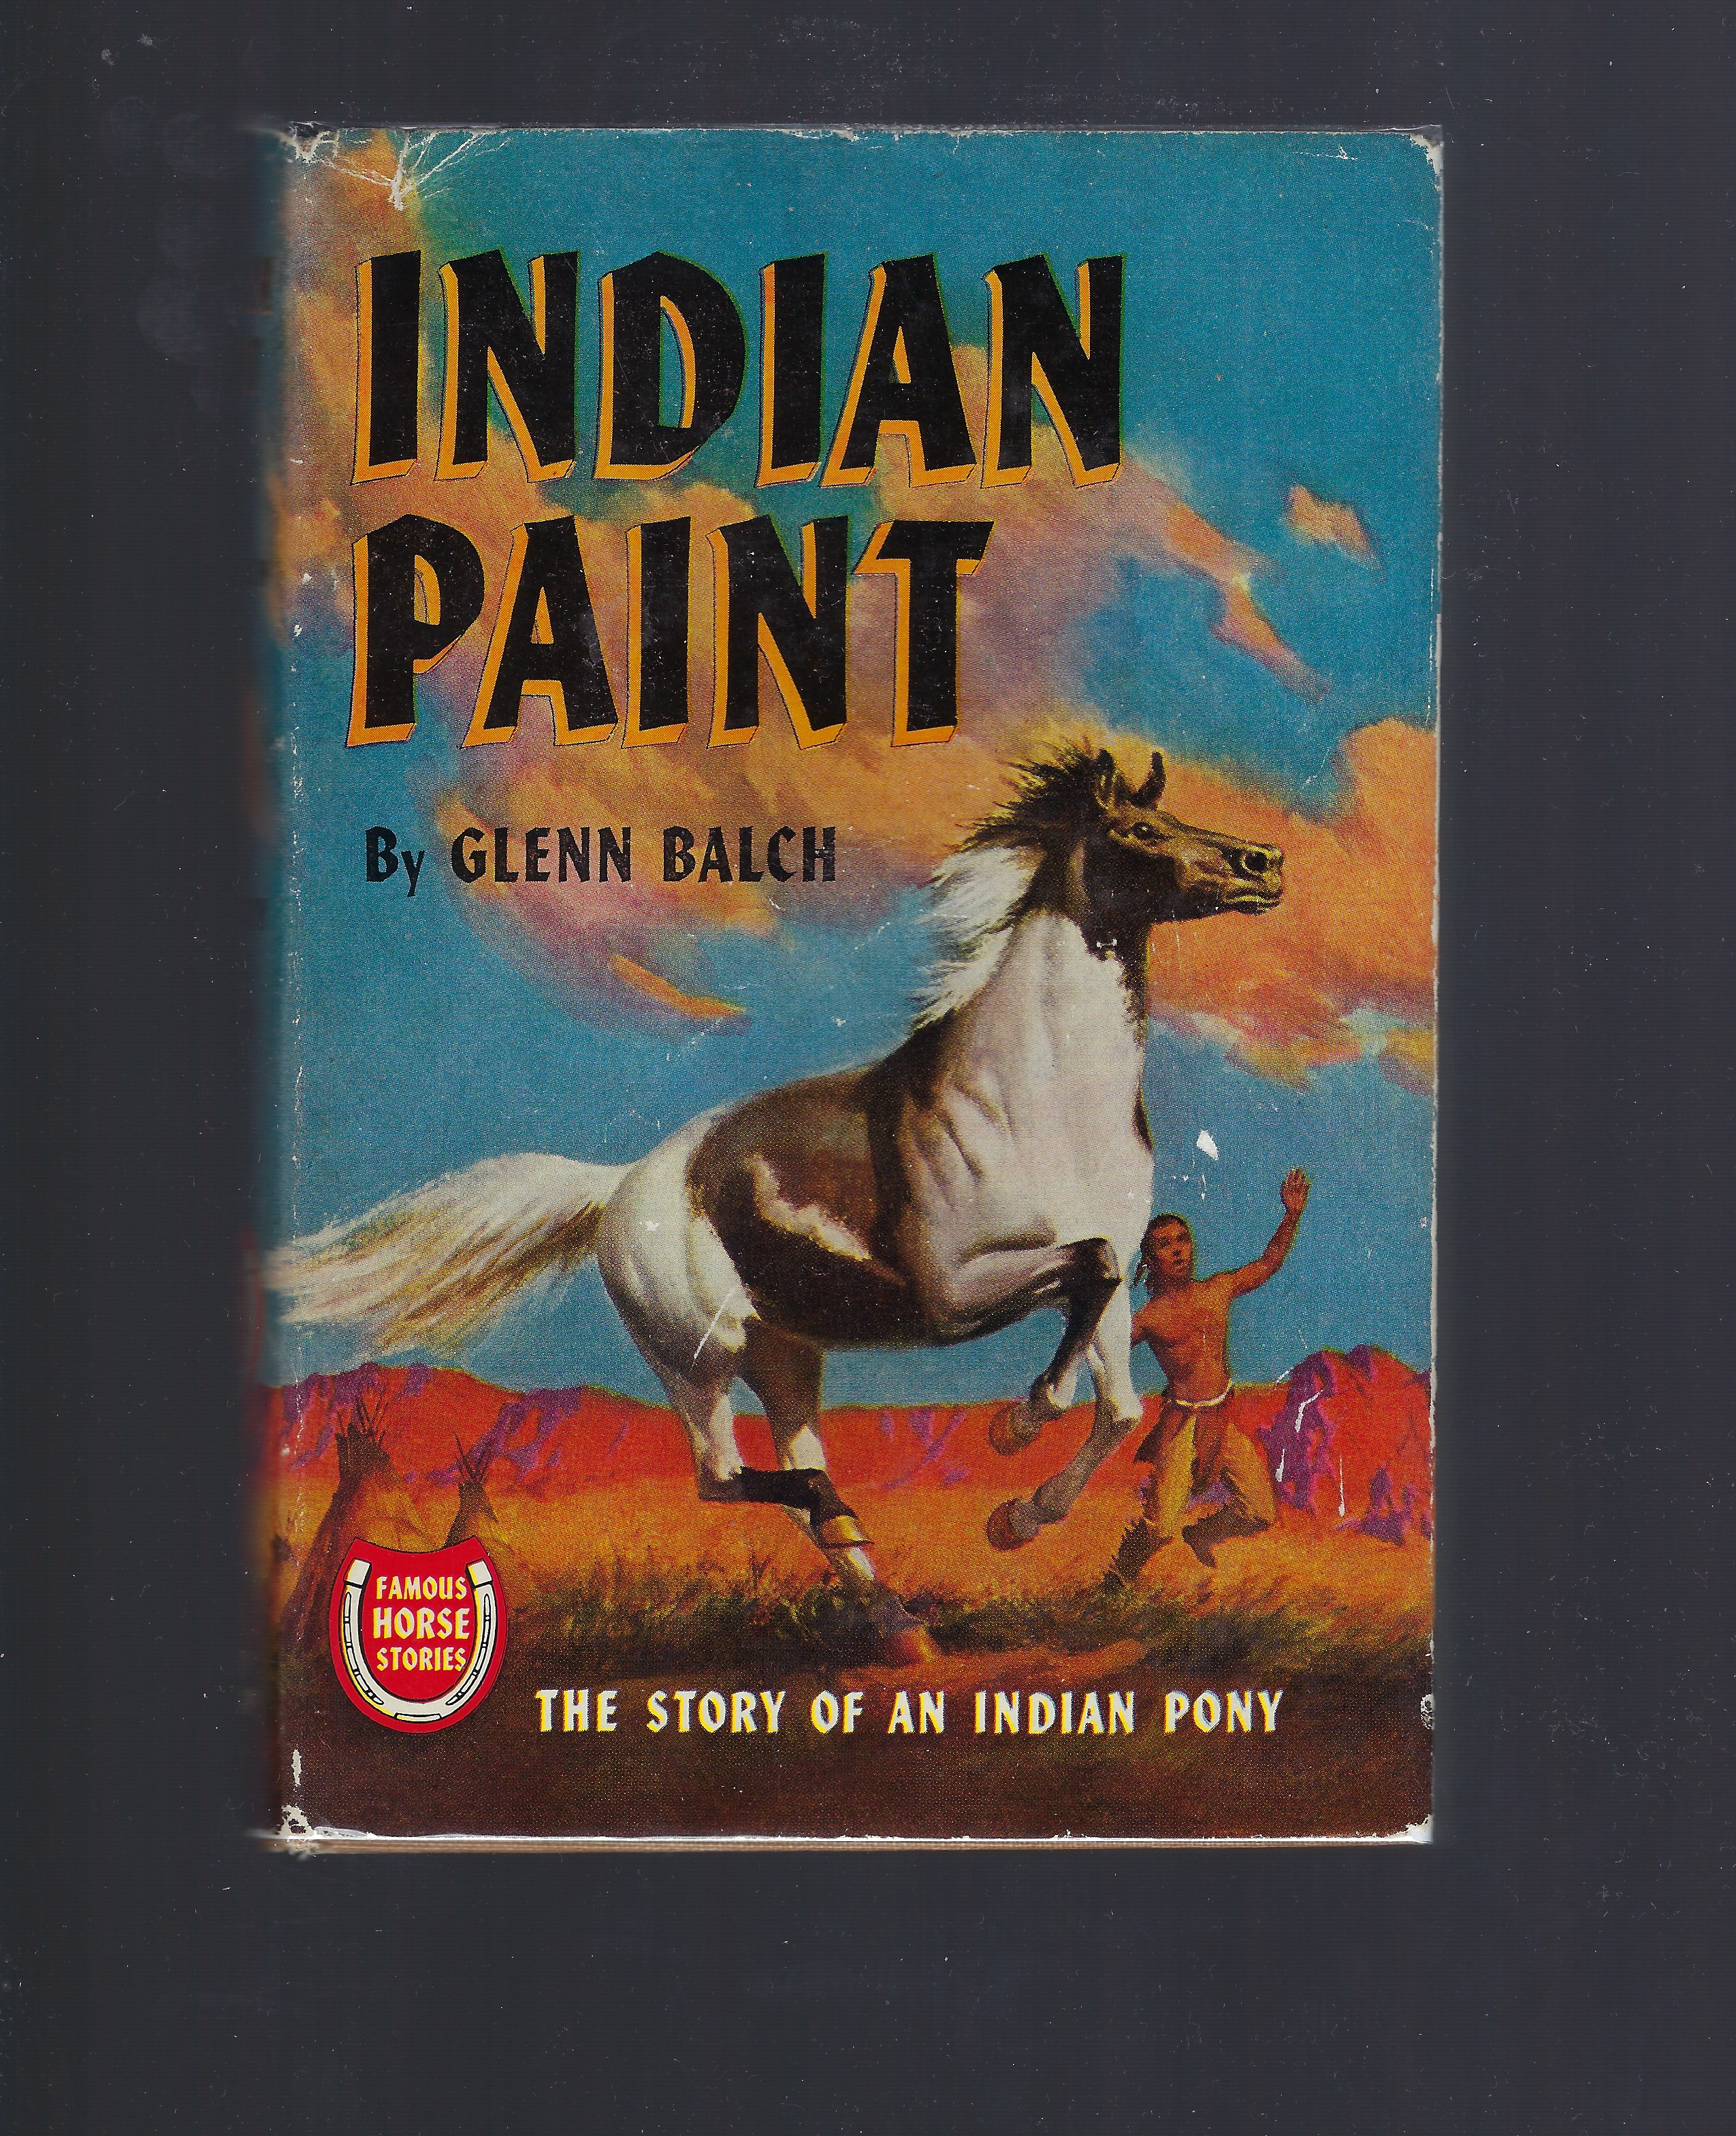 Indian Paint The Story of an Indian Pony (Famous Horse Stories HB/DJ, Glenn Balch; Illustrator-Nils Hogner